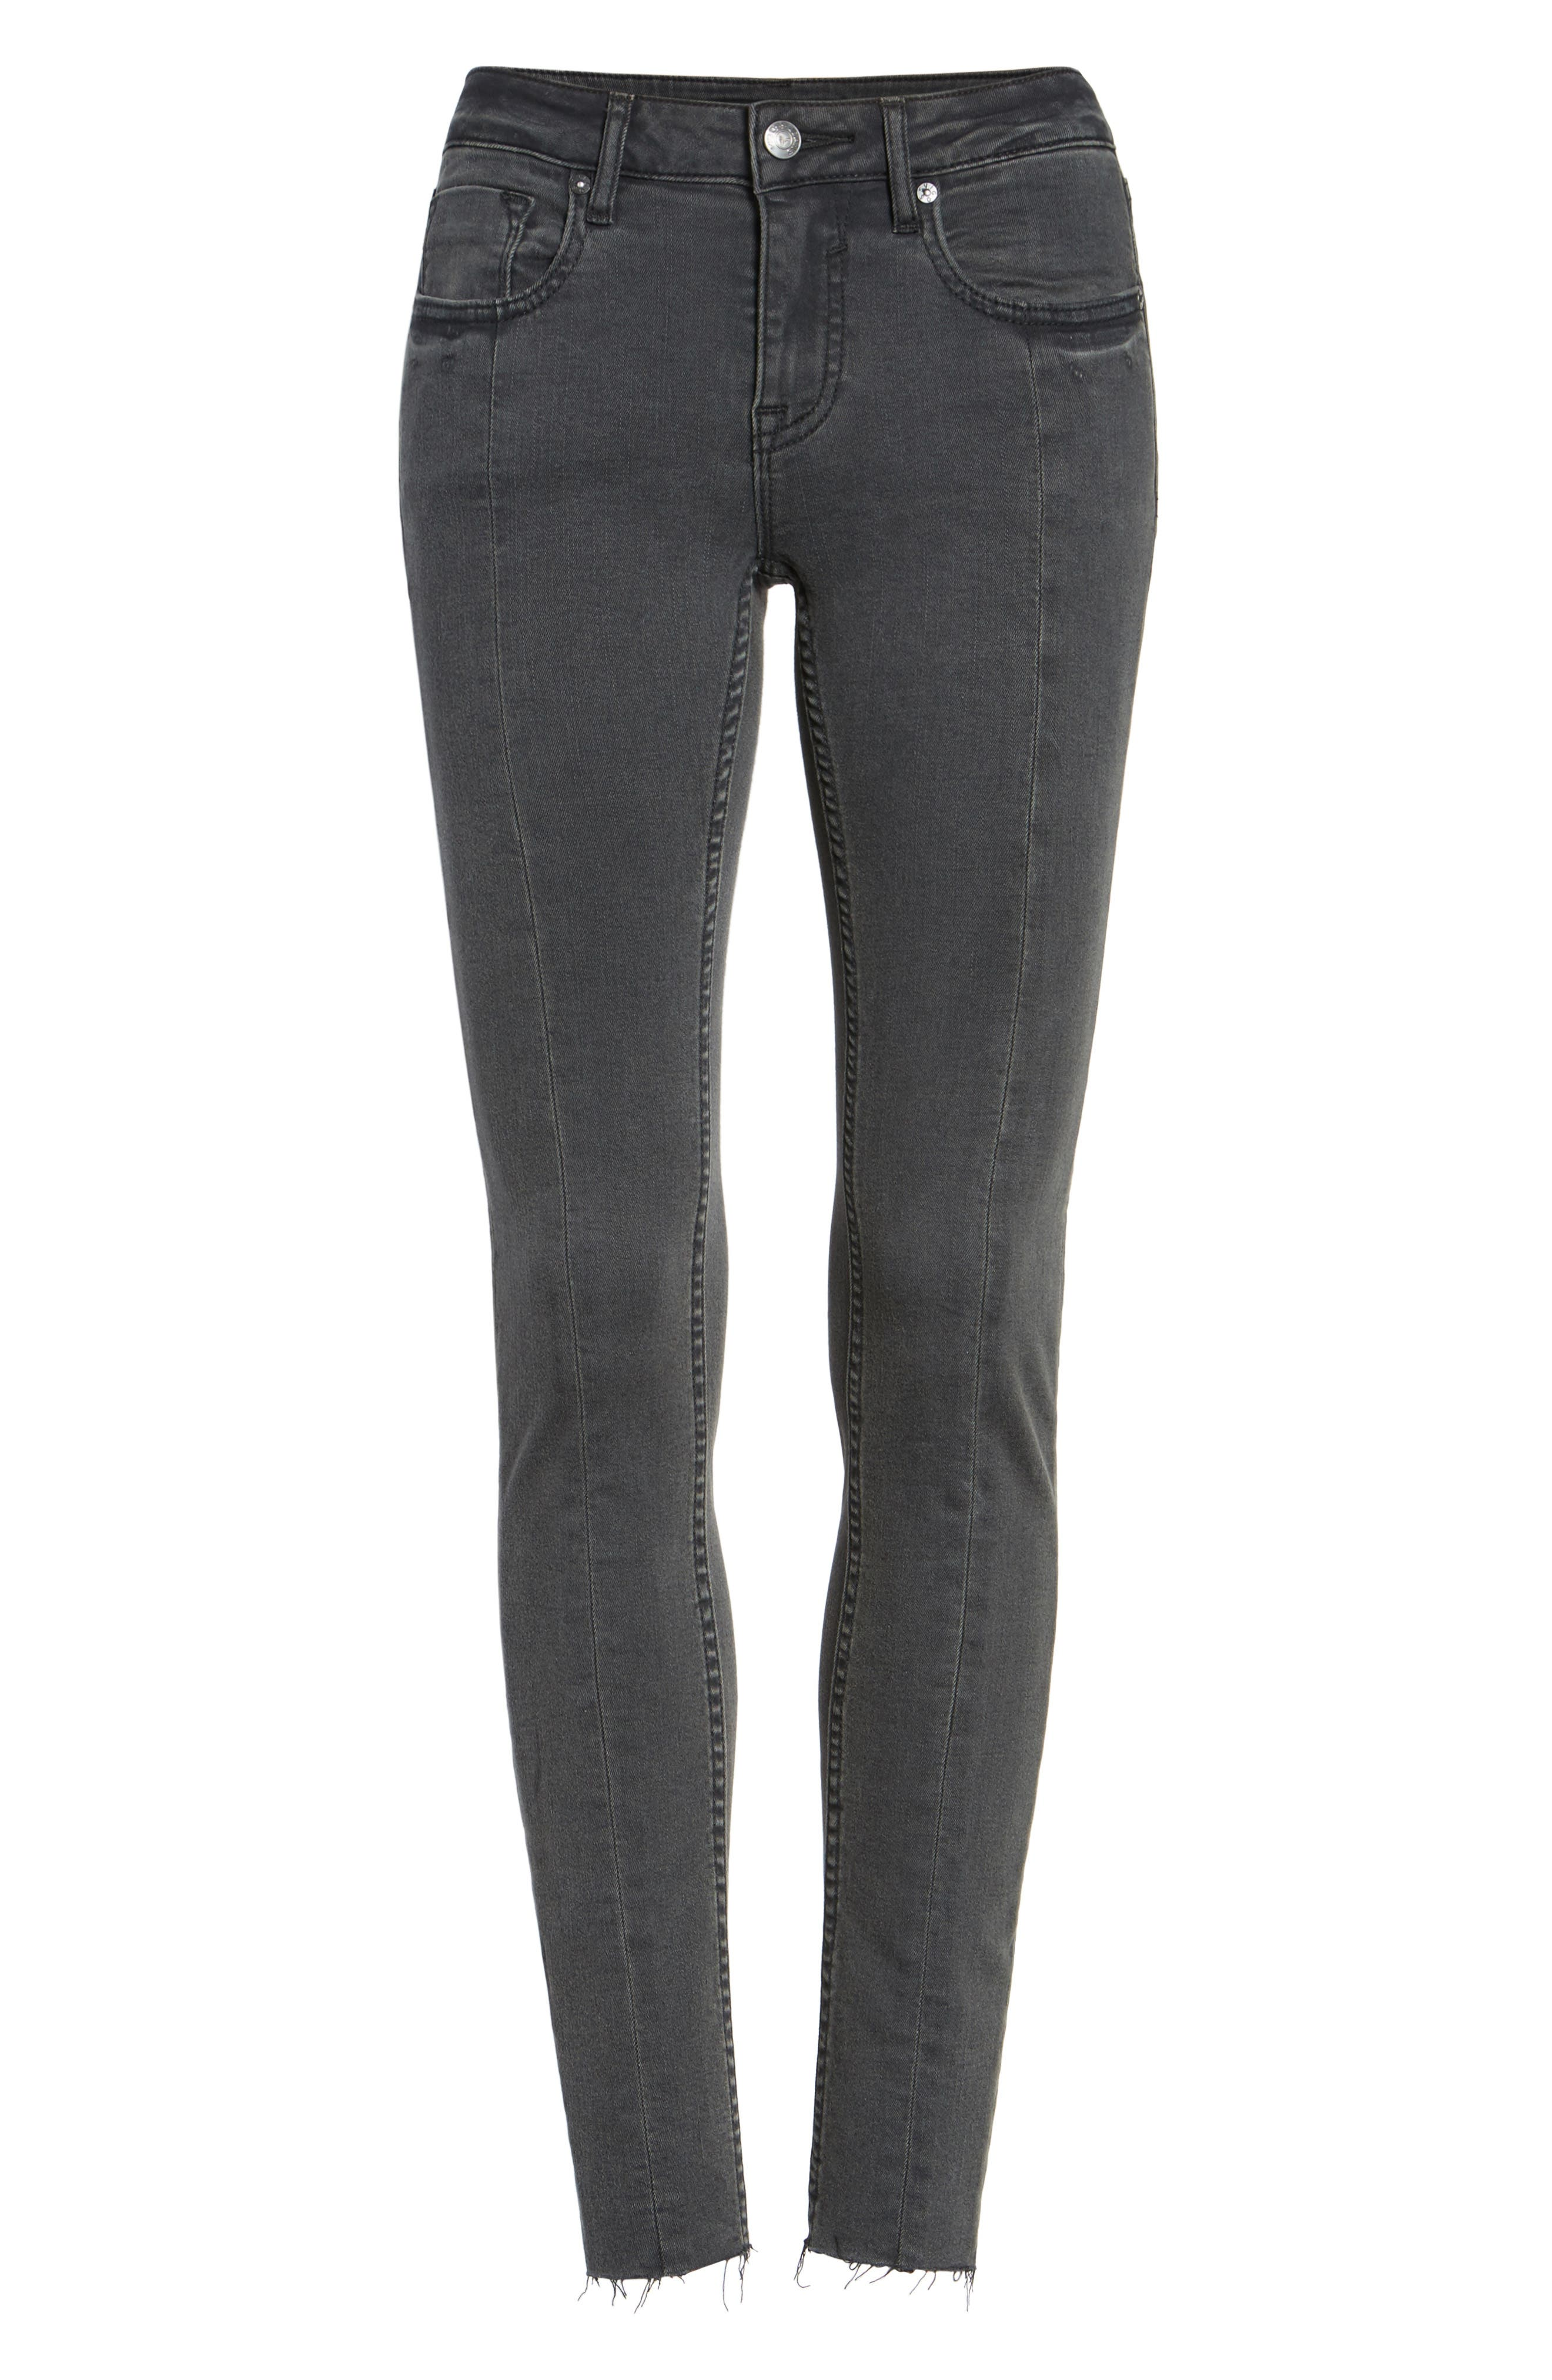 Jagger Front Seam Skinny Jeans,                             Alternate thumbnail 6, color,                             Washed Black